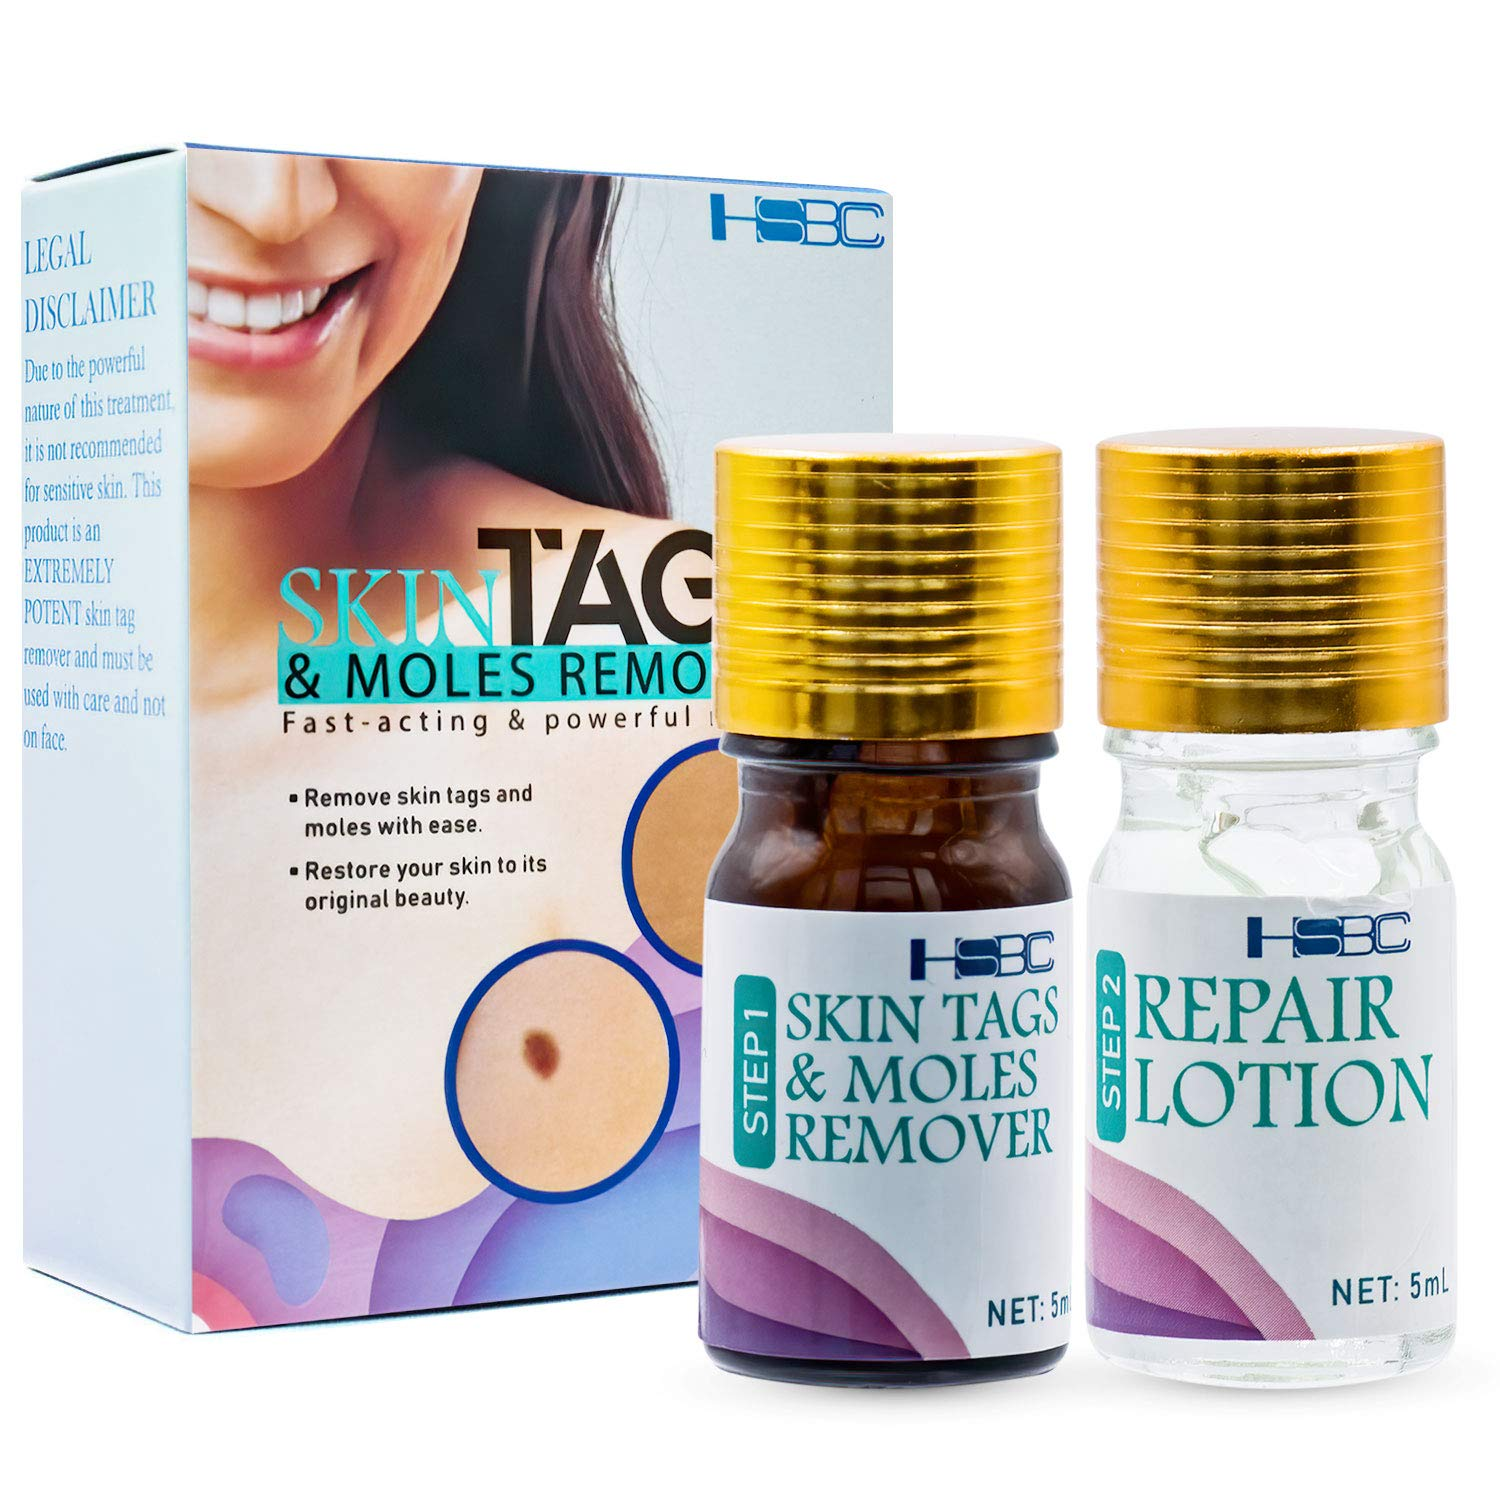 Skin Tag Remover, Skin Tag Removal For Your Skin